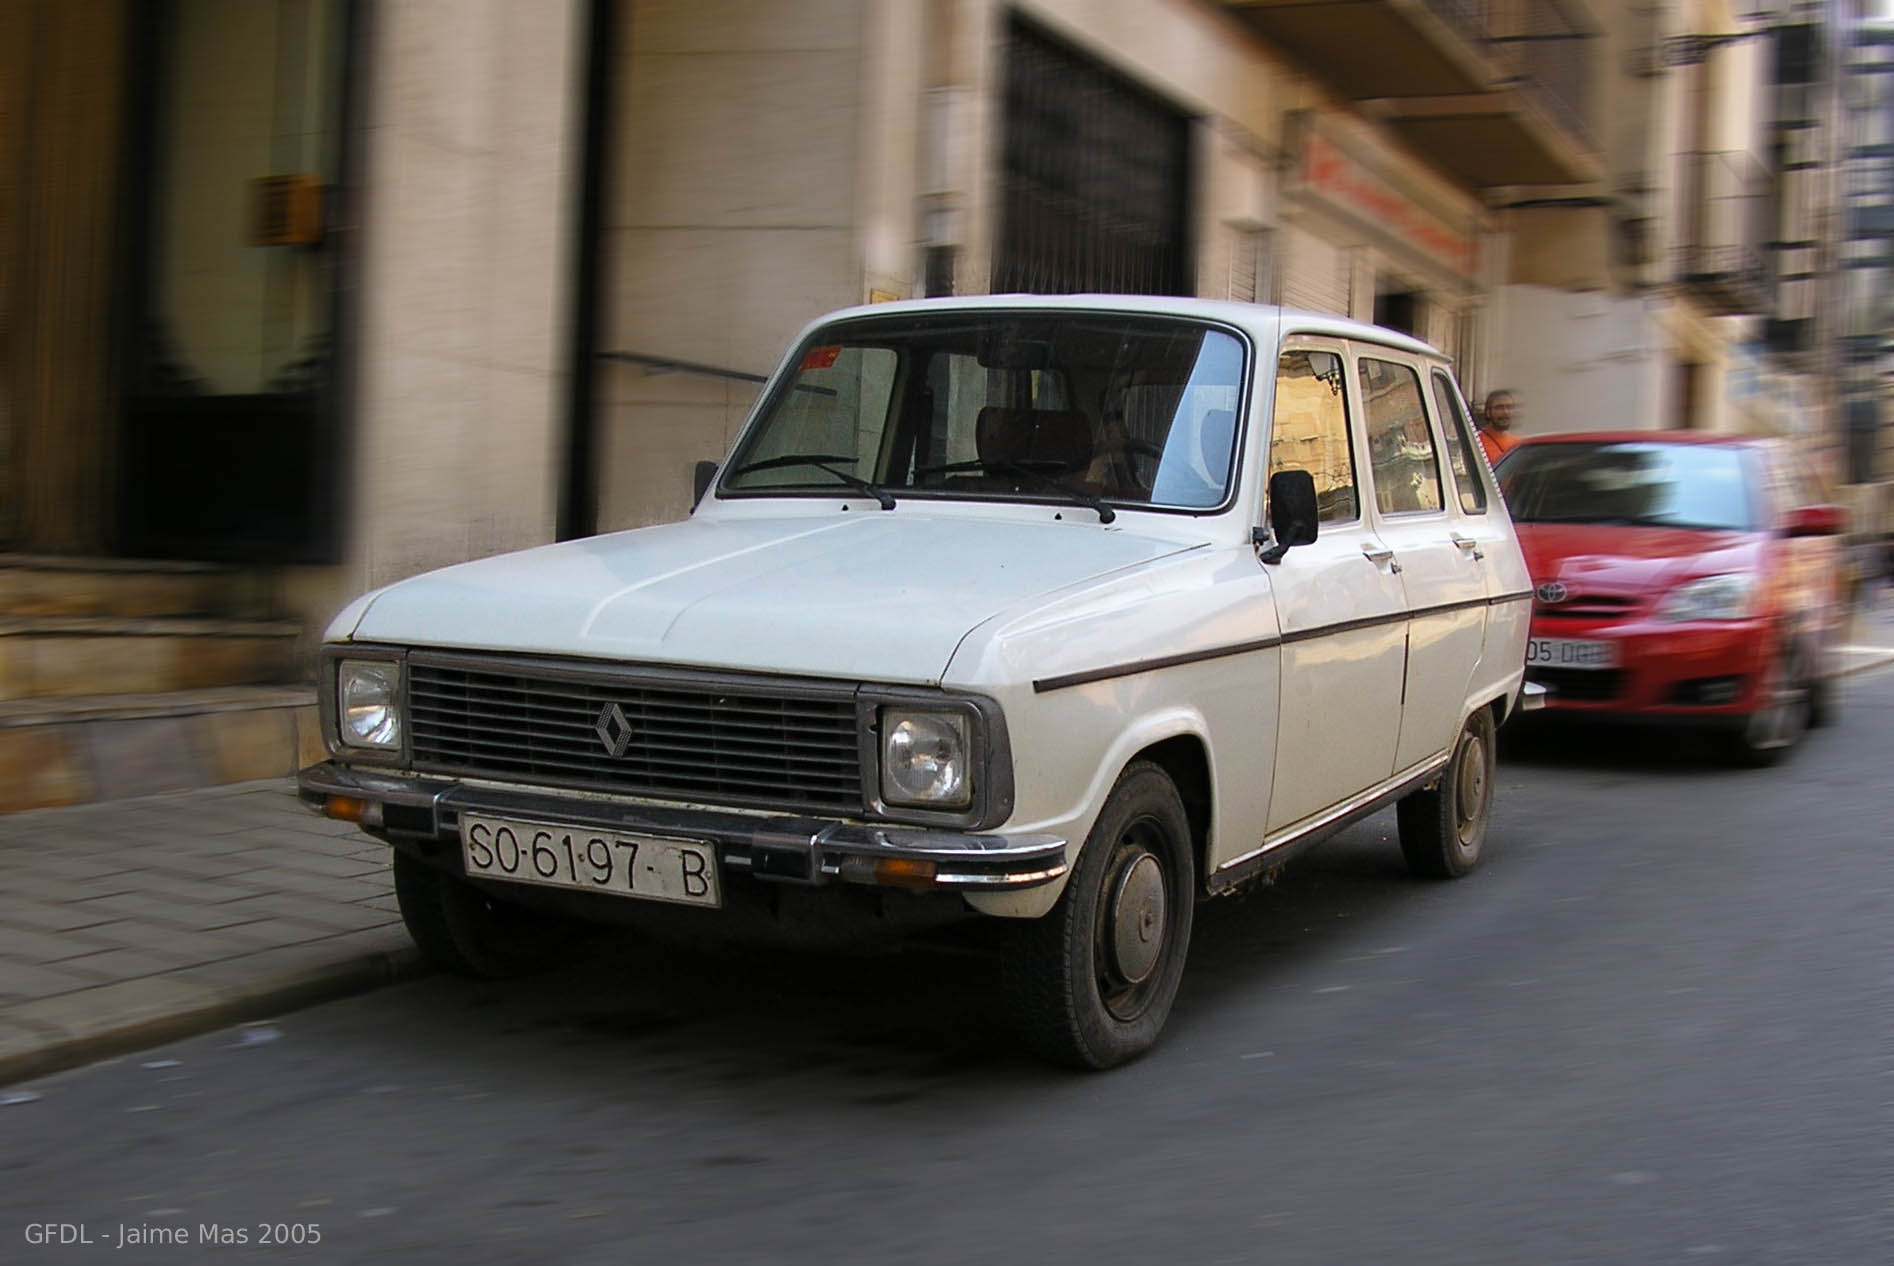 blanche avg Renault 6 front